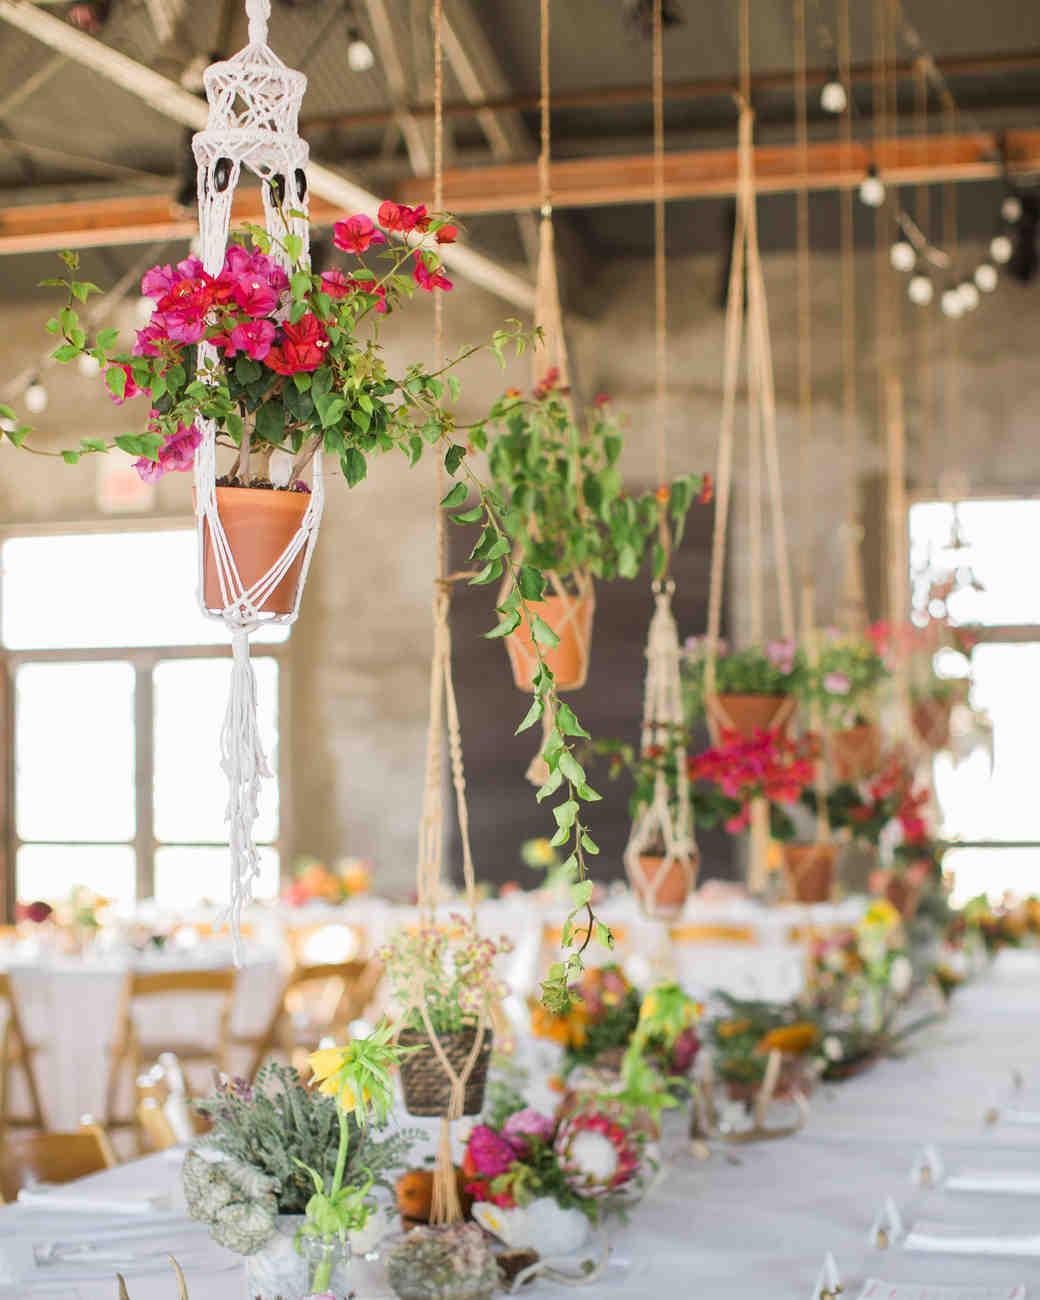 Boho-Chic Wedding Ideas For Free-Spirited Brides And